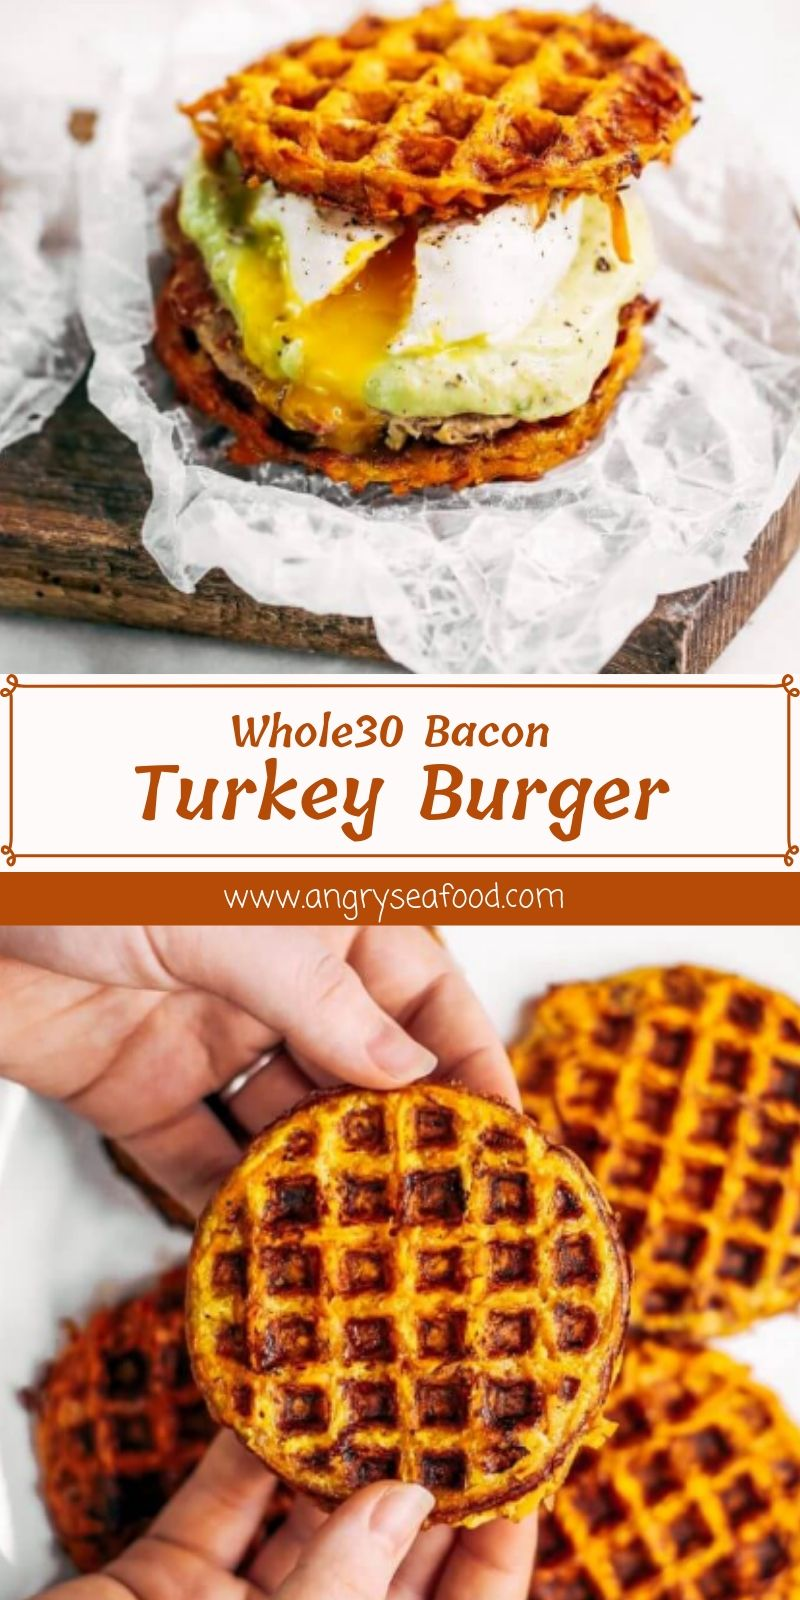 Whole30 Bacon Turkey Burger